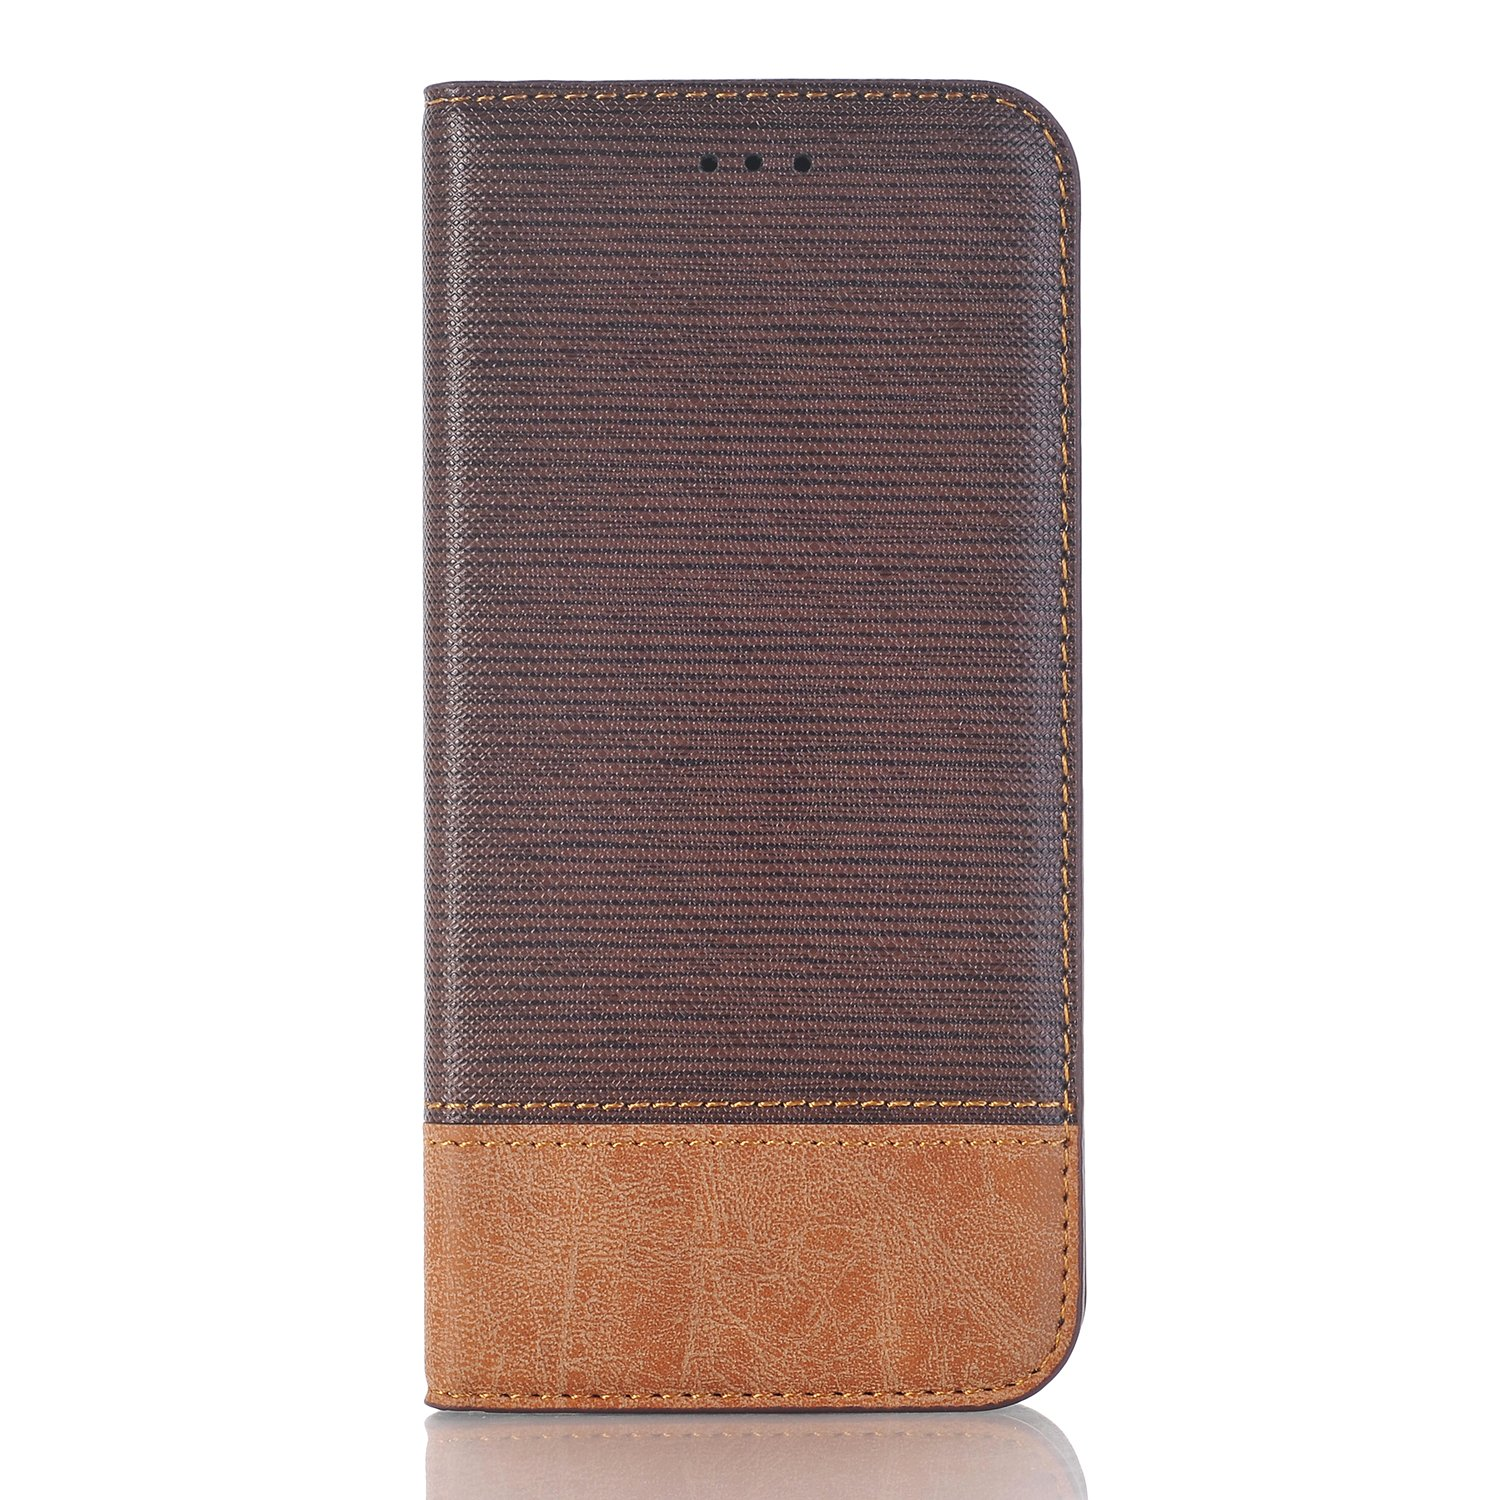 Samsung Galaxy S9 Wallet Case, PU Leather Case Magnetic Closure with Card Holder Folio Cover Flip Carrying Case Stand Feature Cover for Samsung Galaxy S9 - Dark Brown